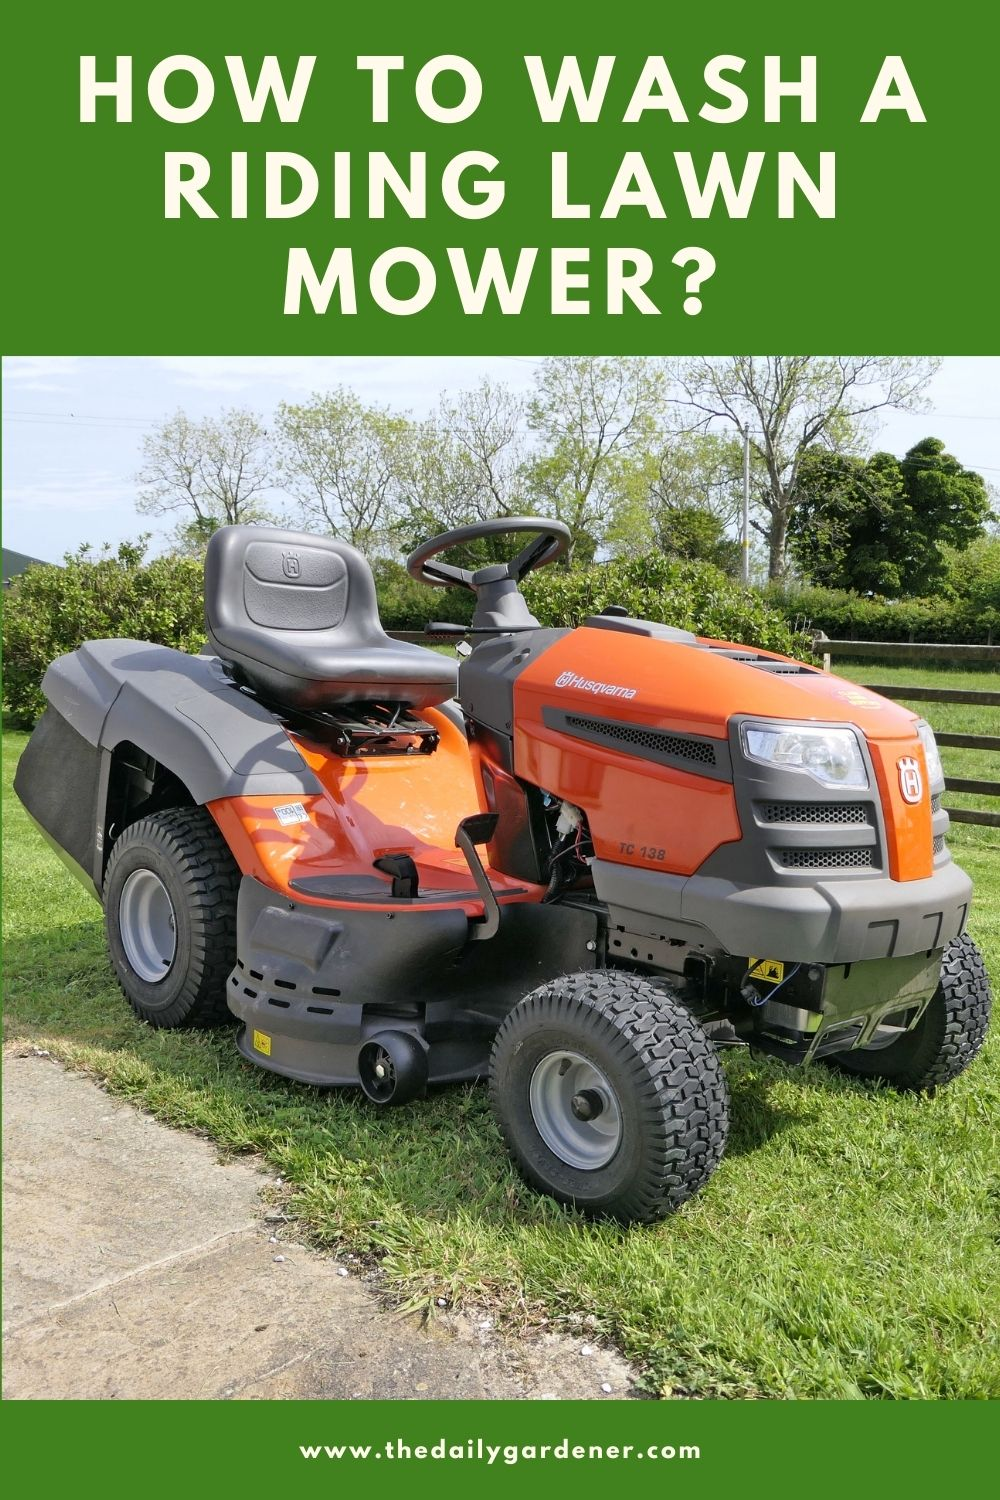 How to Wash a Riding Lawn Mower 1